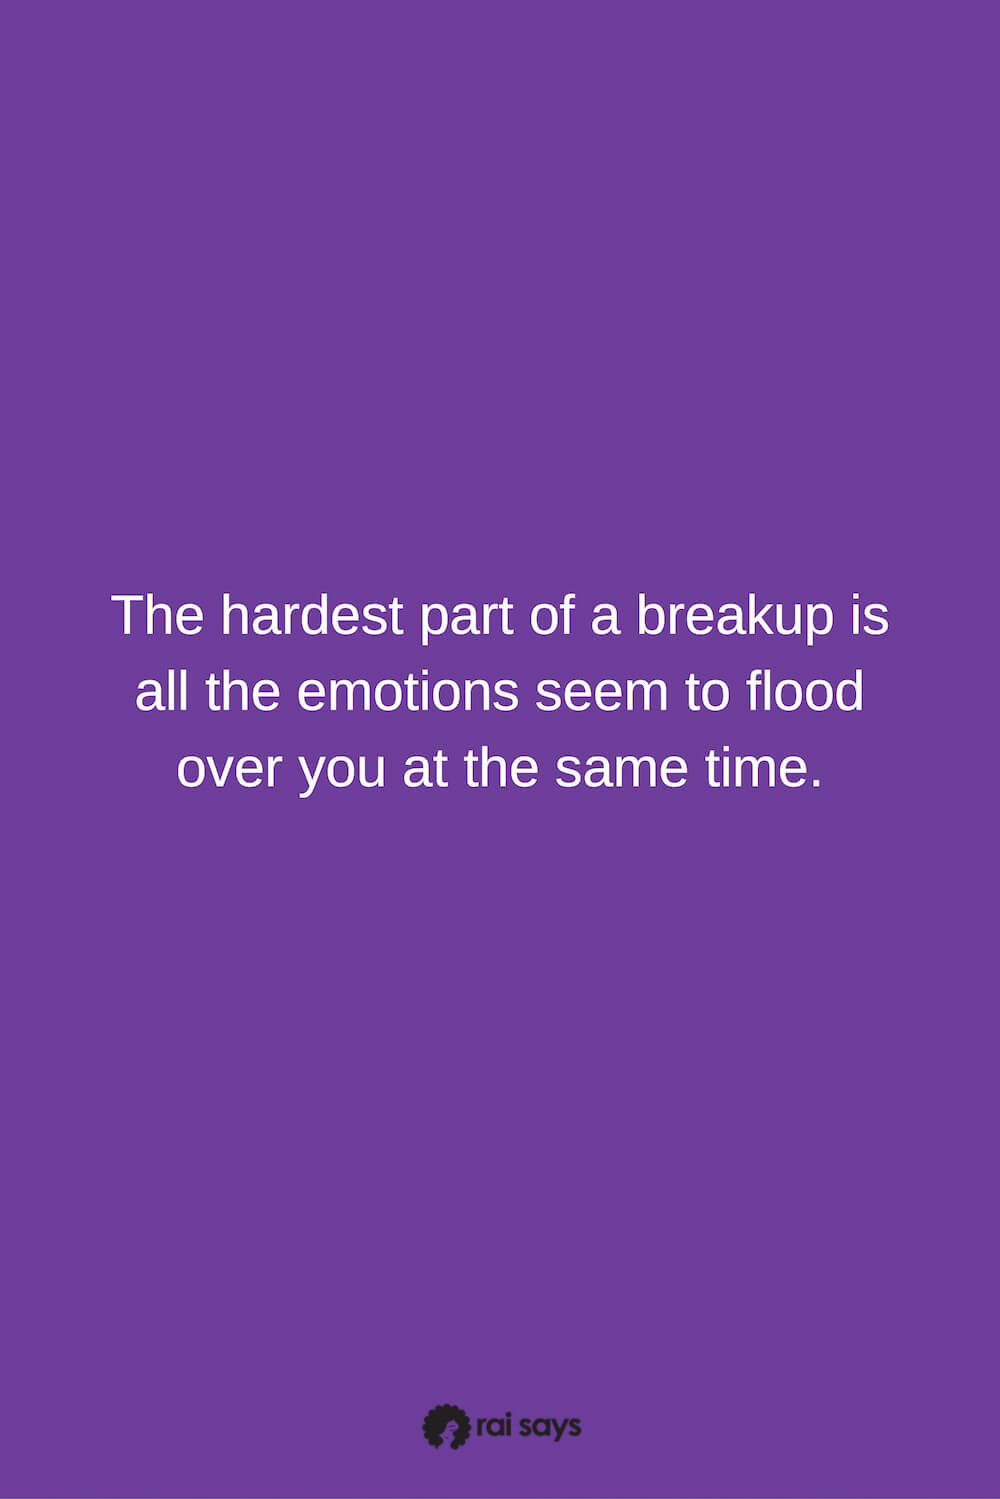 It's hard to deal with emotions after a breakup